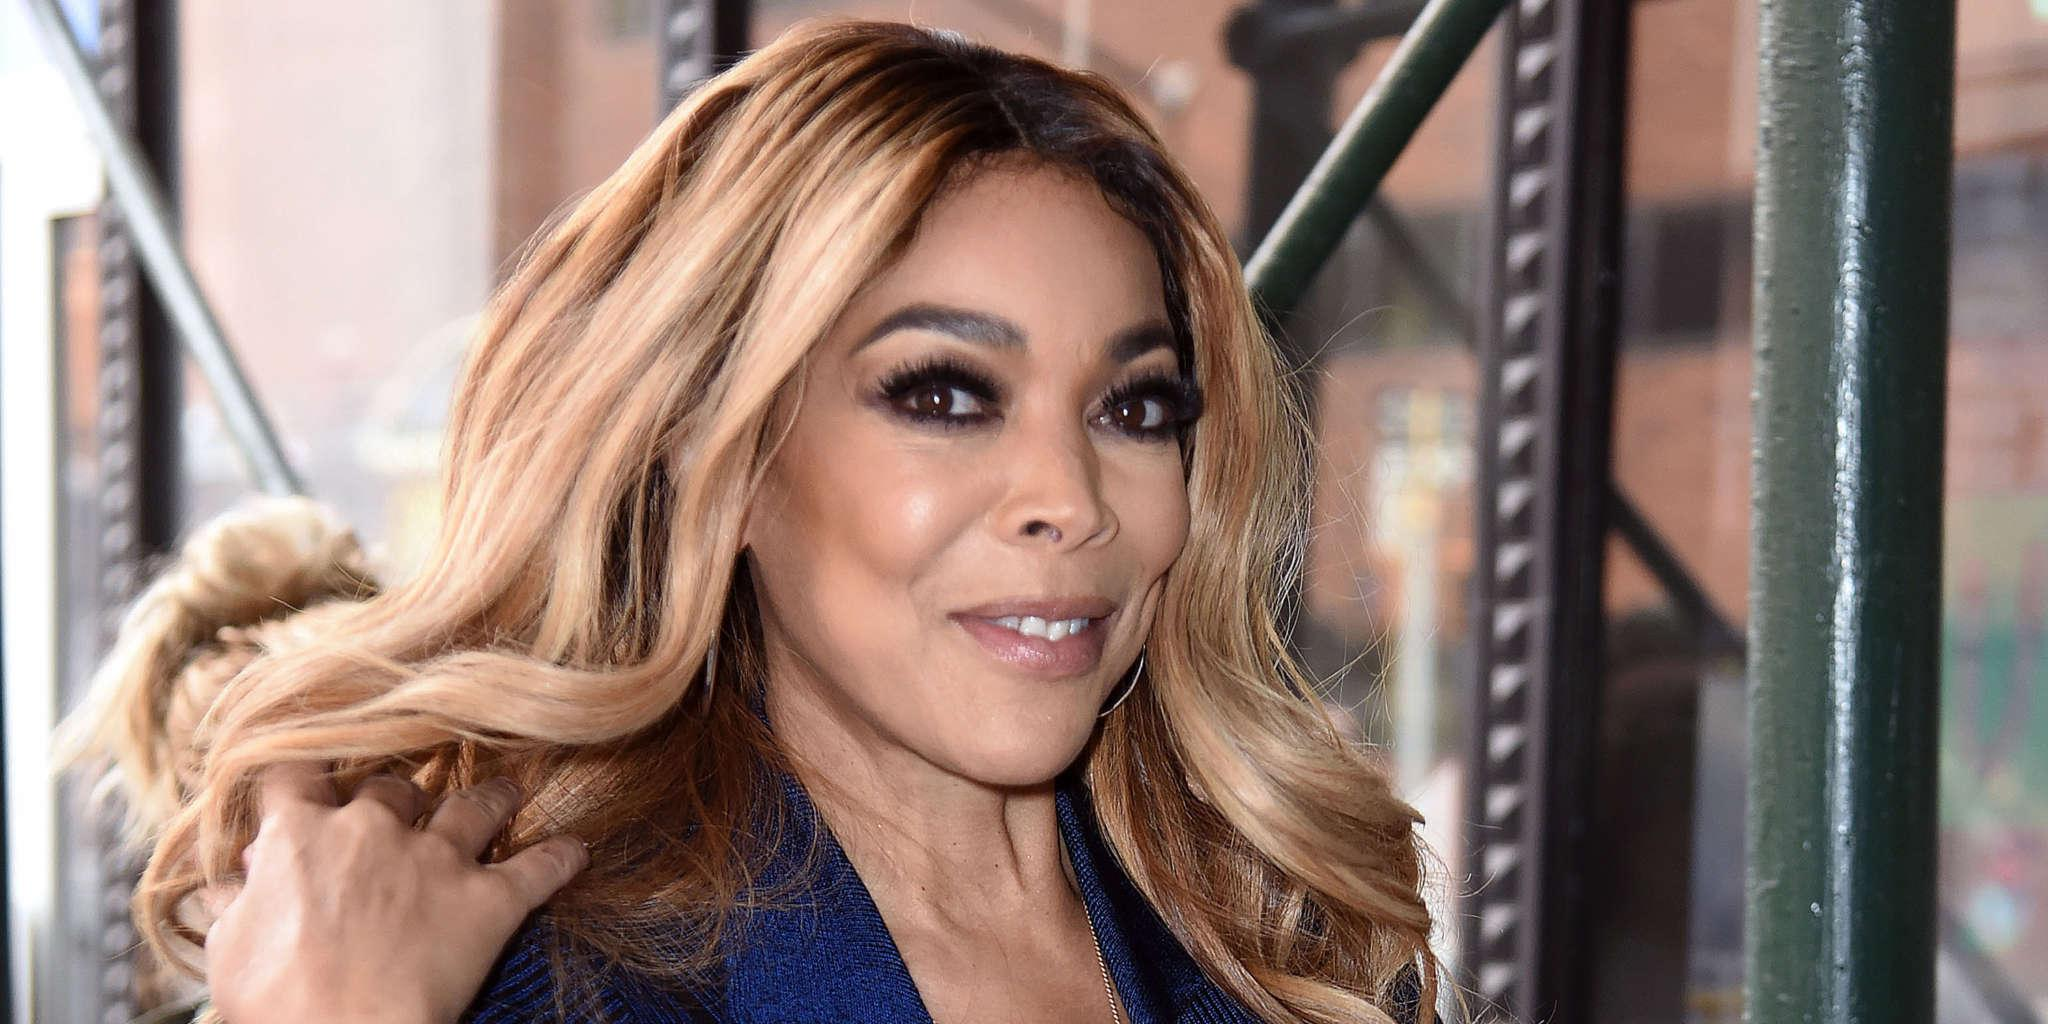 Wendy Williams Puts Her Long Legs On Display In Little Black Dress While Out With Her New Beau!